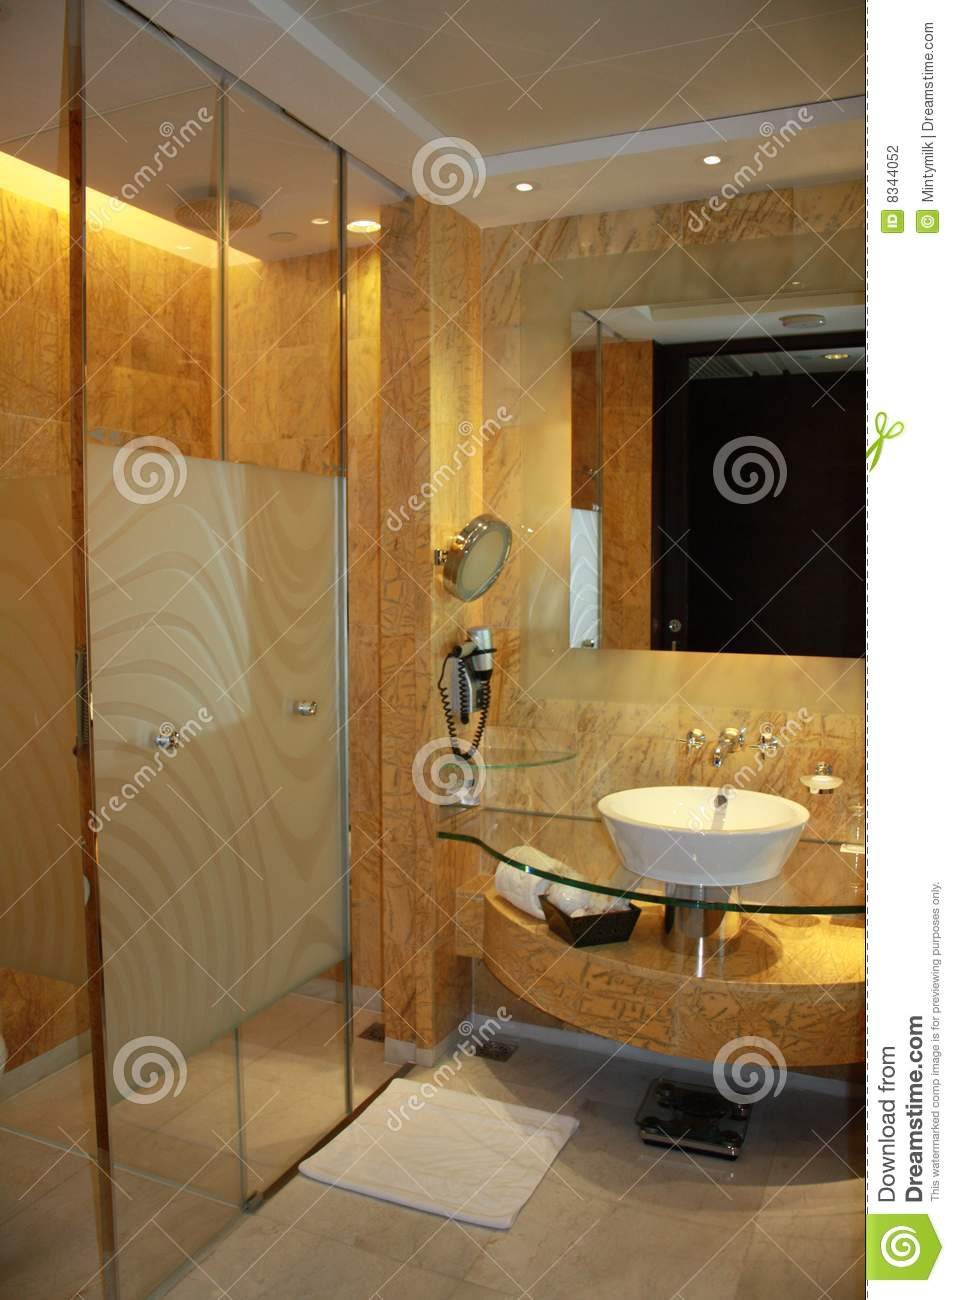 Hotel Room Photography: Washroom Of Hotel Room Stock Photography